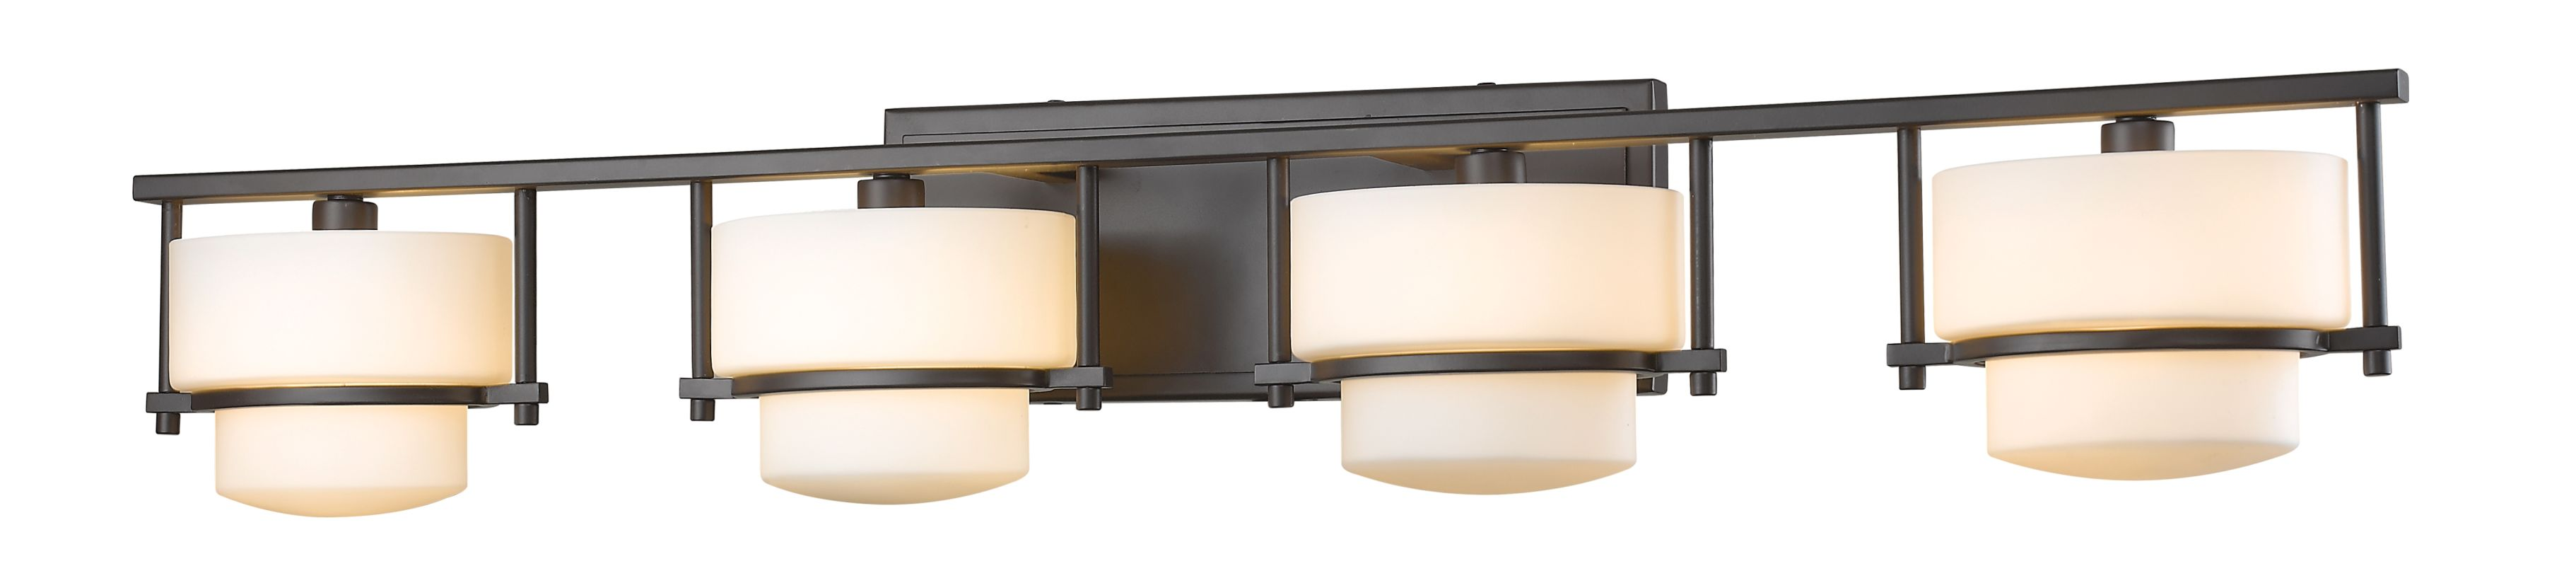 Z-Lite 3030-4V Porter 4 Light Bathroom Vanity Fixture Bronze Indoor Sale $446.00 ITEM: bci2614016 ID#:3030-4V-BRZ UPC: 685659045017 :